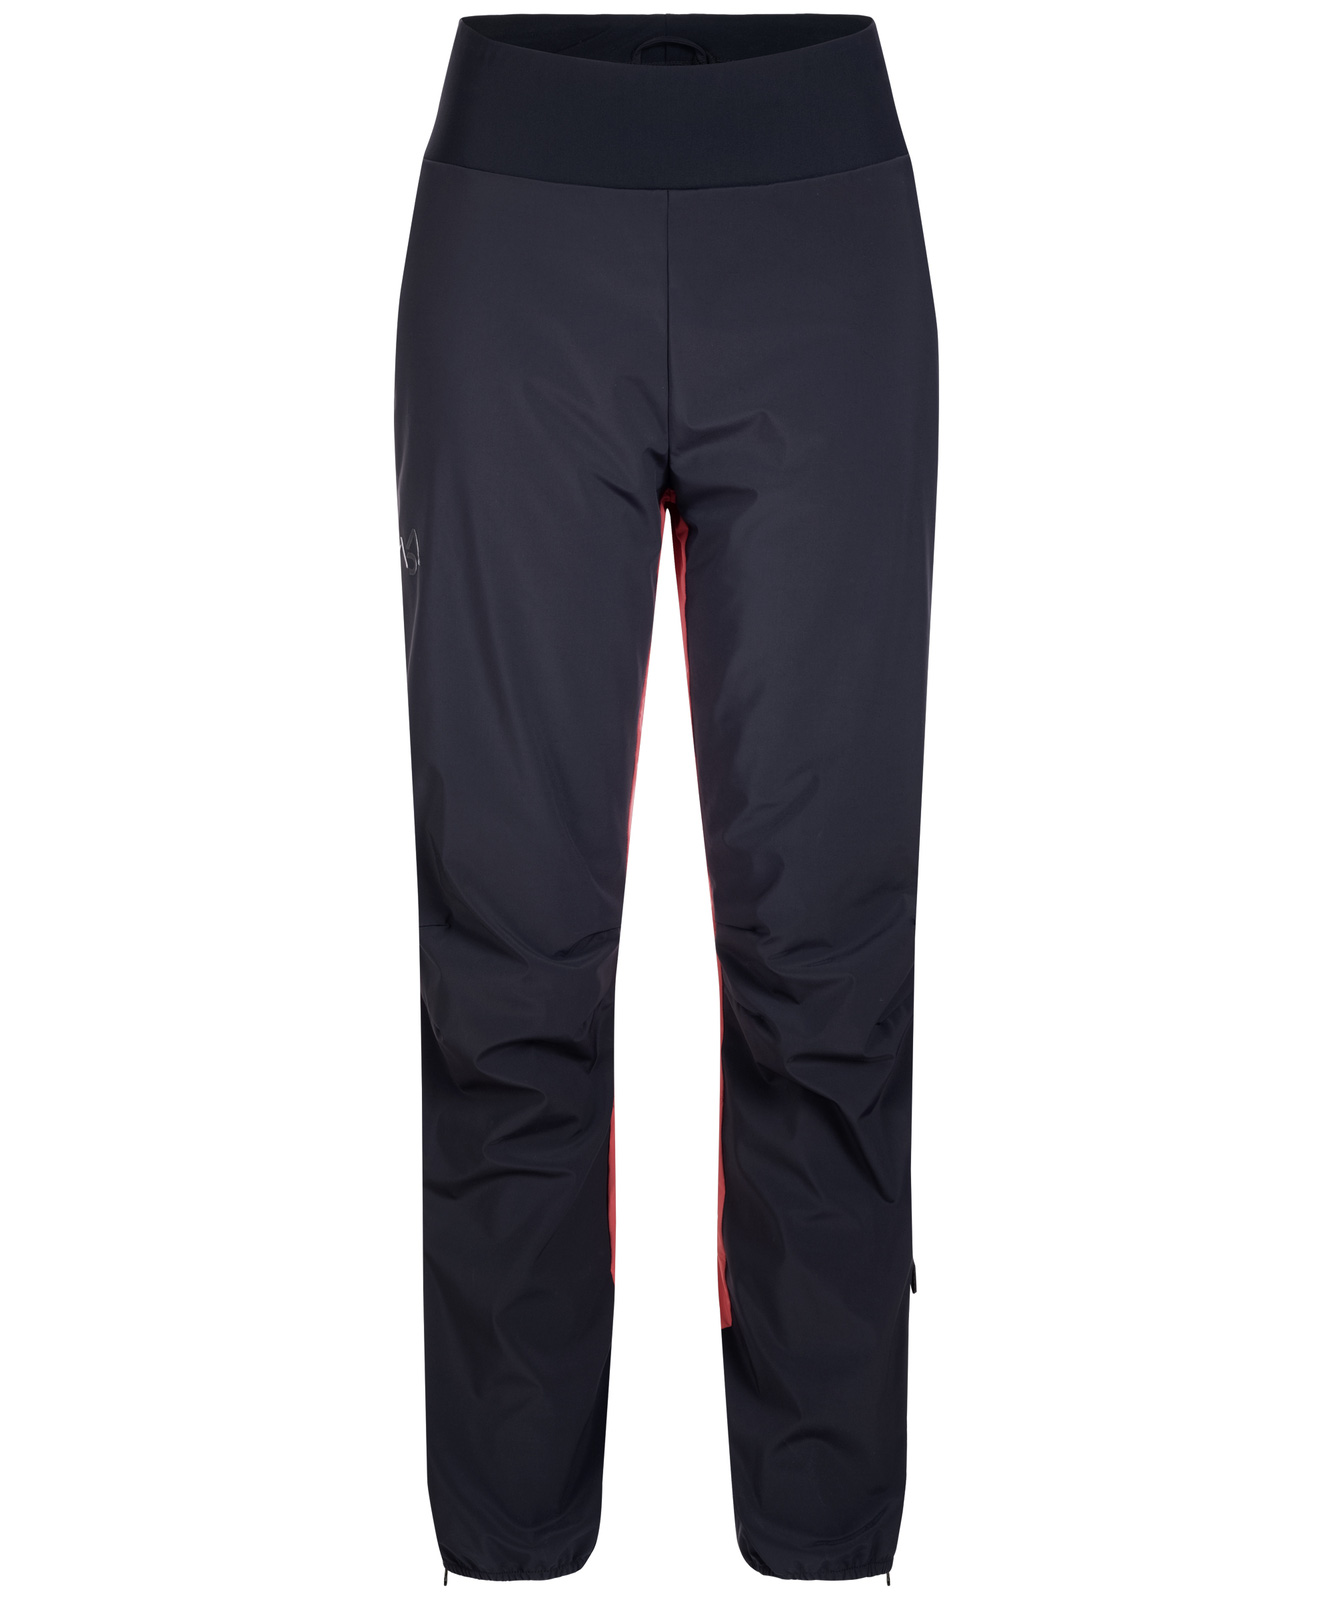 WX15 Speed Pant